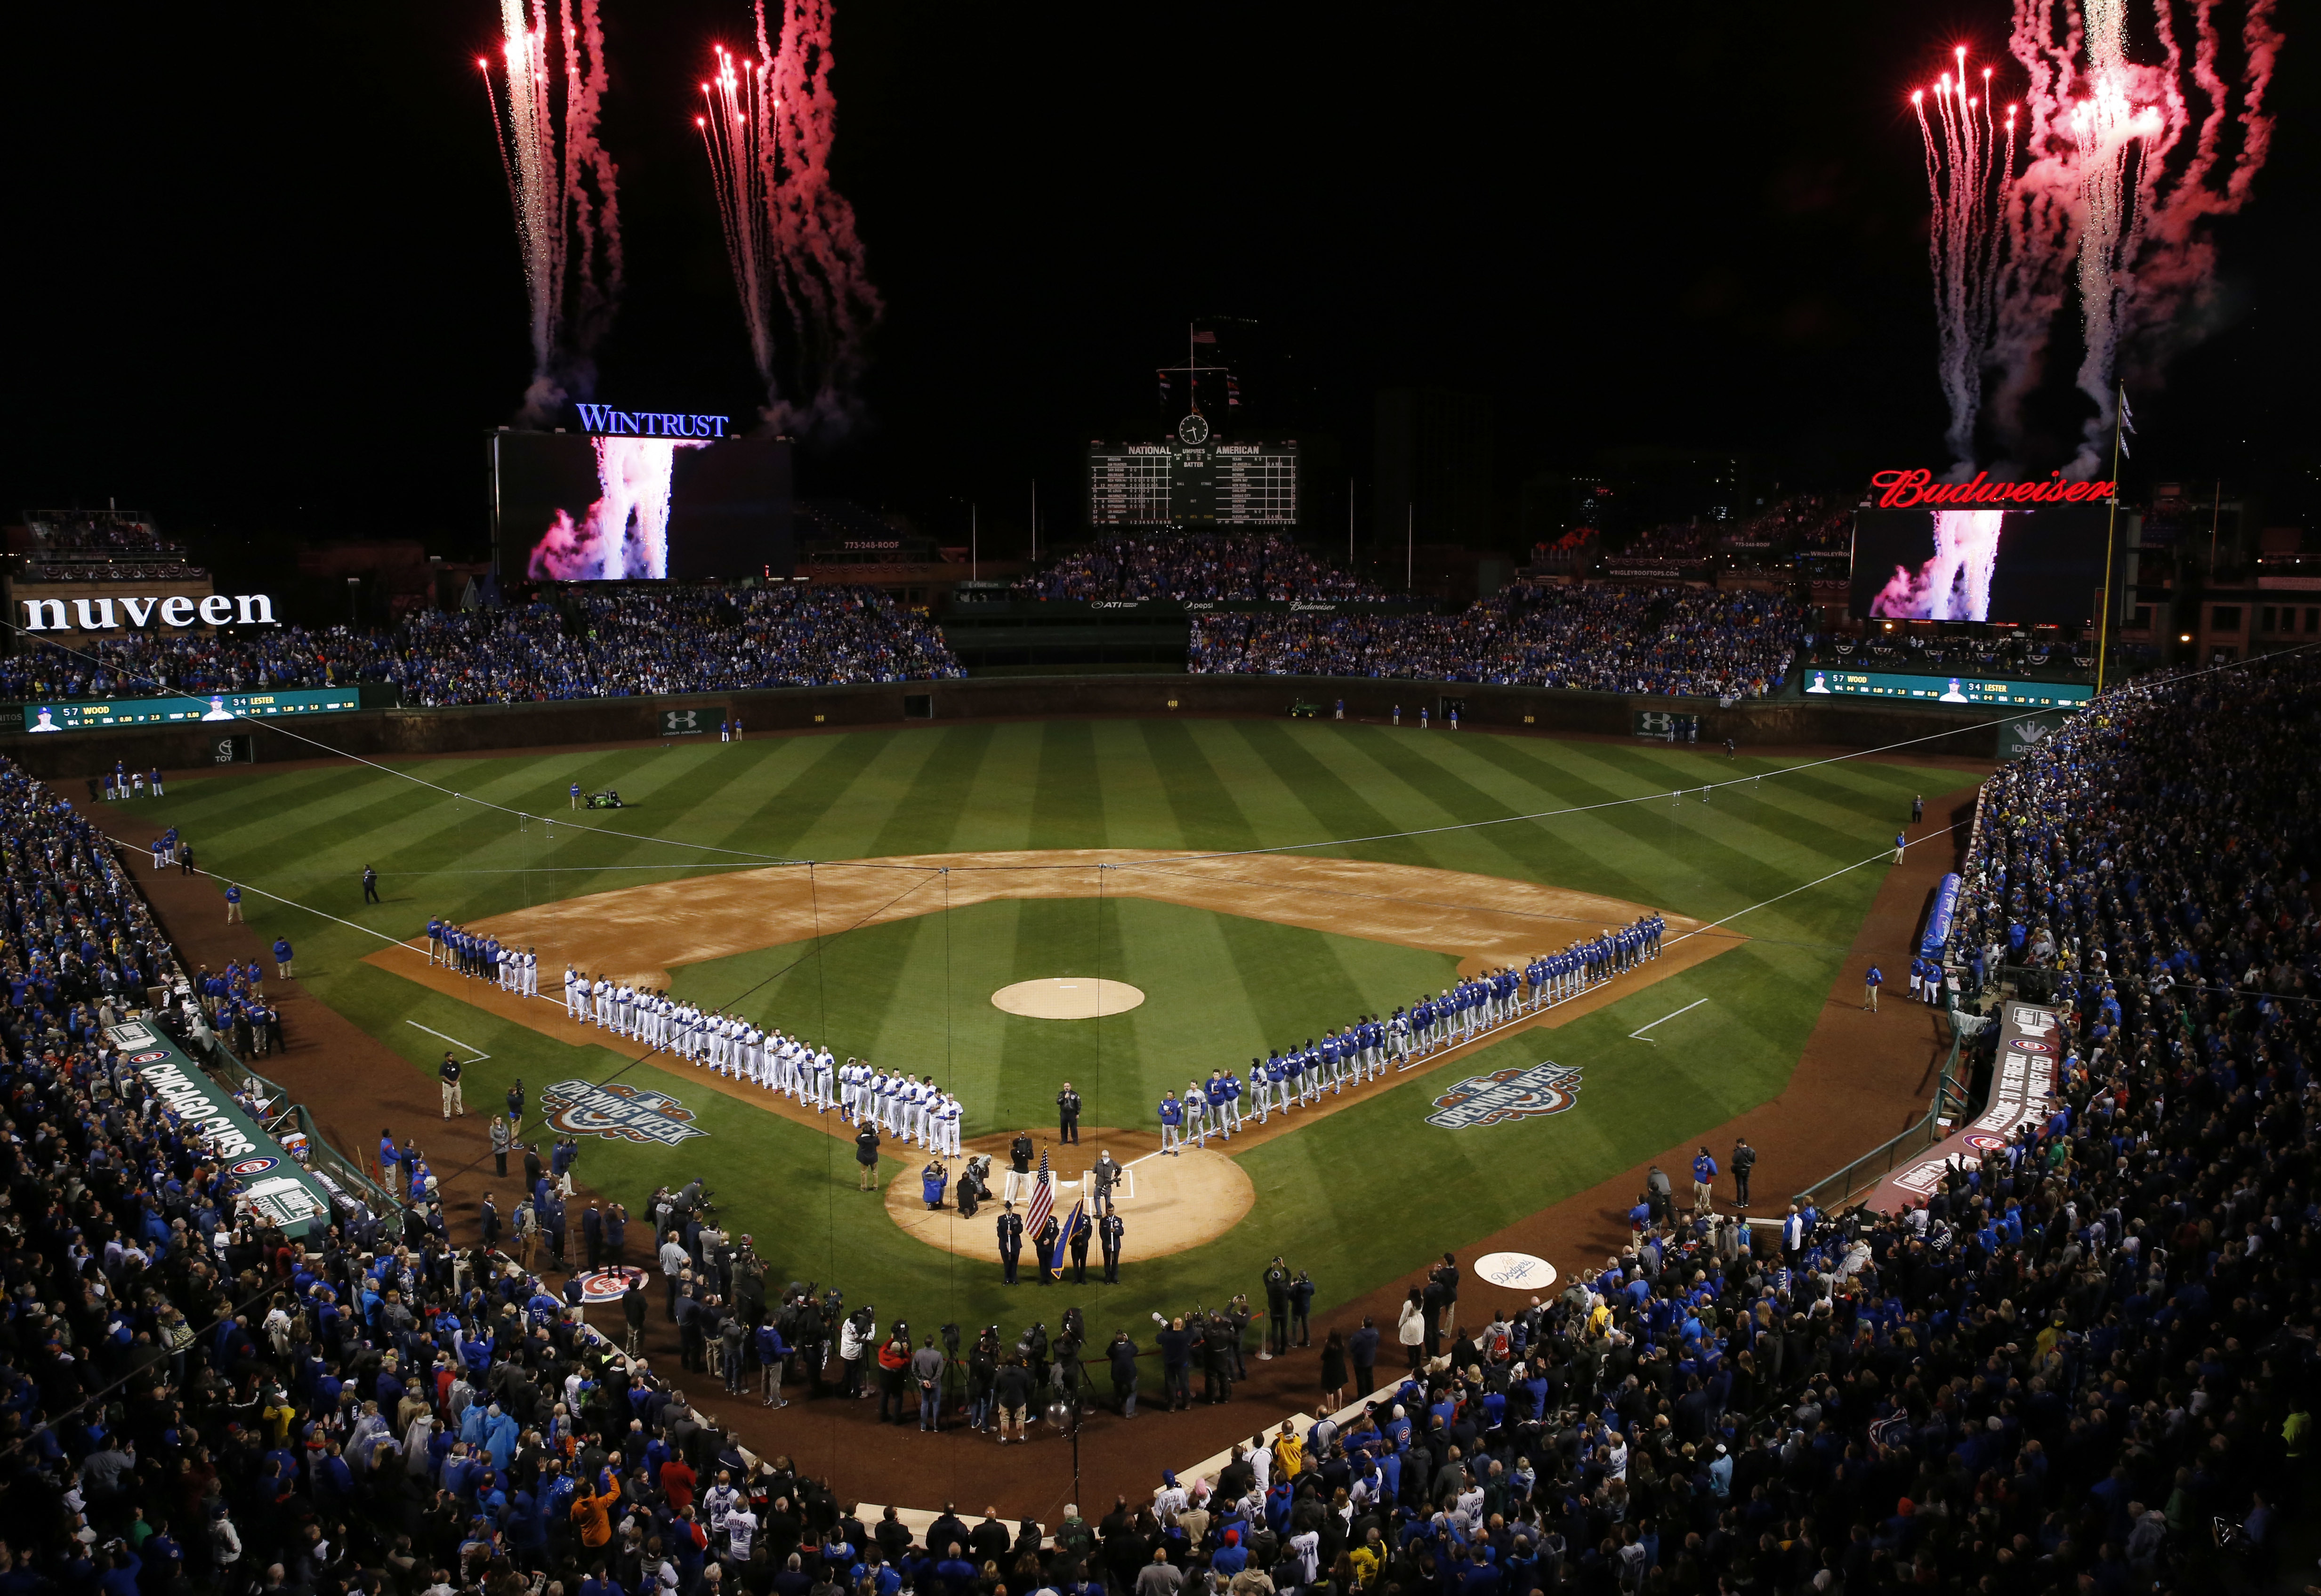 Fans and players stand as they watch fireworks during the national anthem in the home opening ceremonies. (AP Photo/Nam Y. Huh)